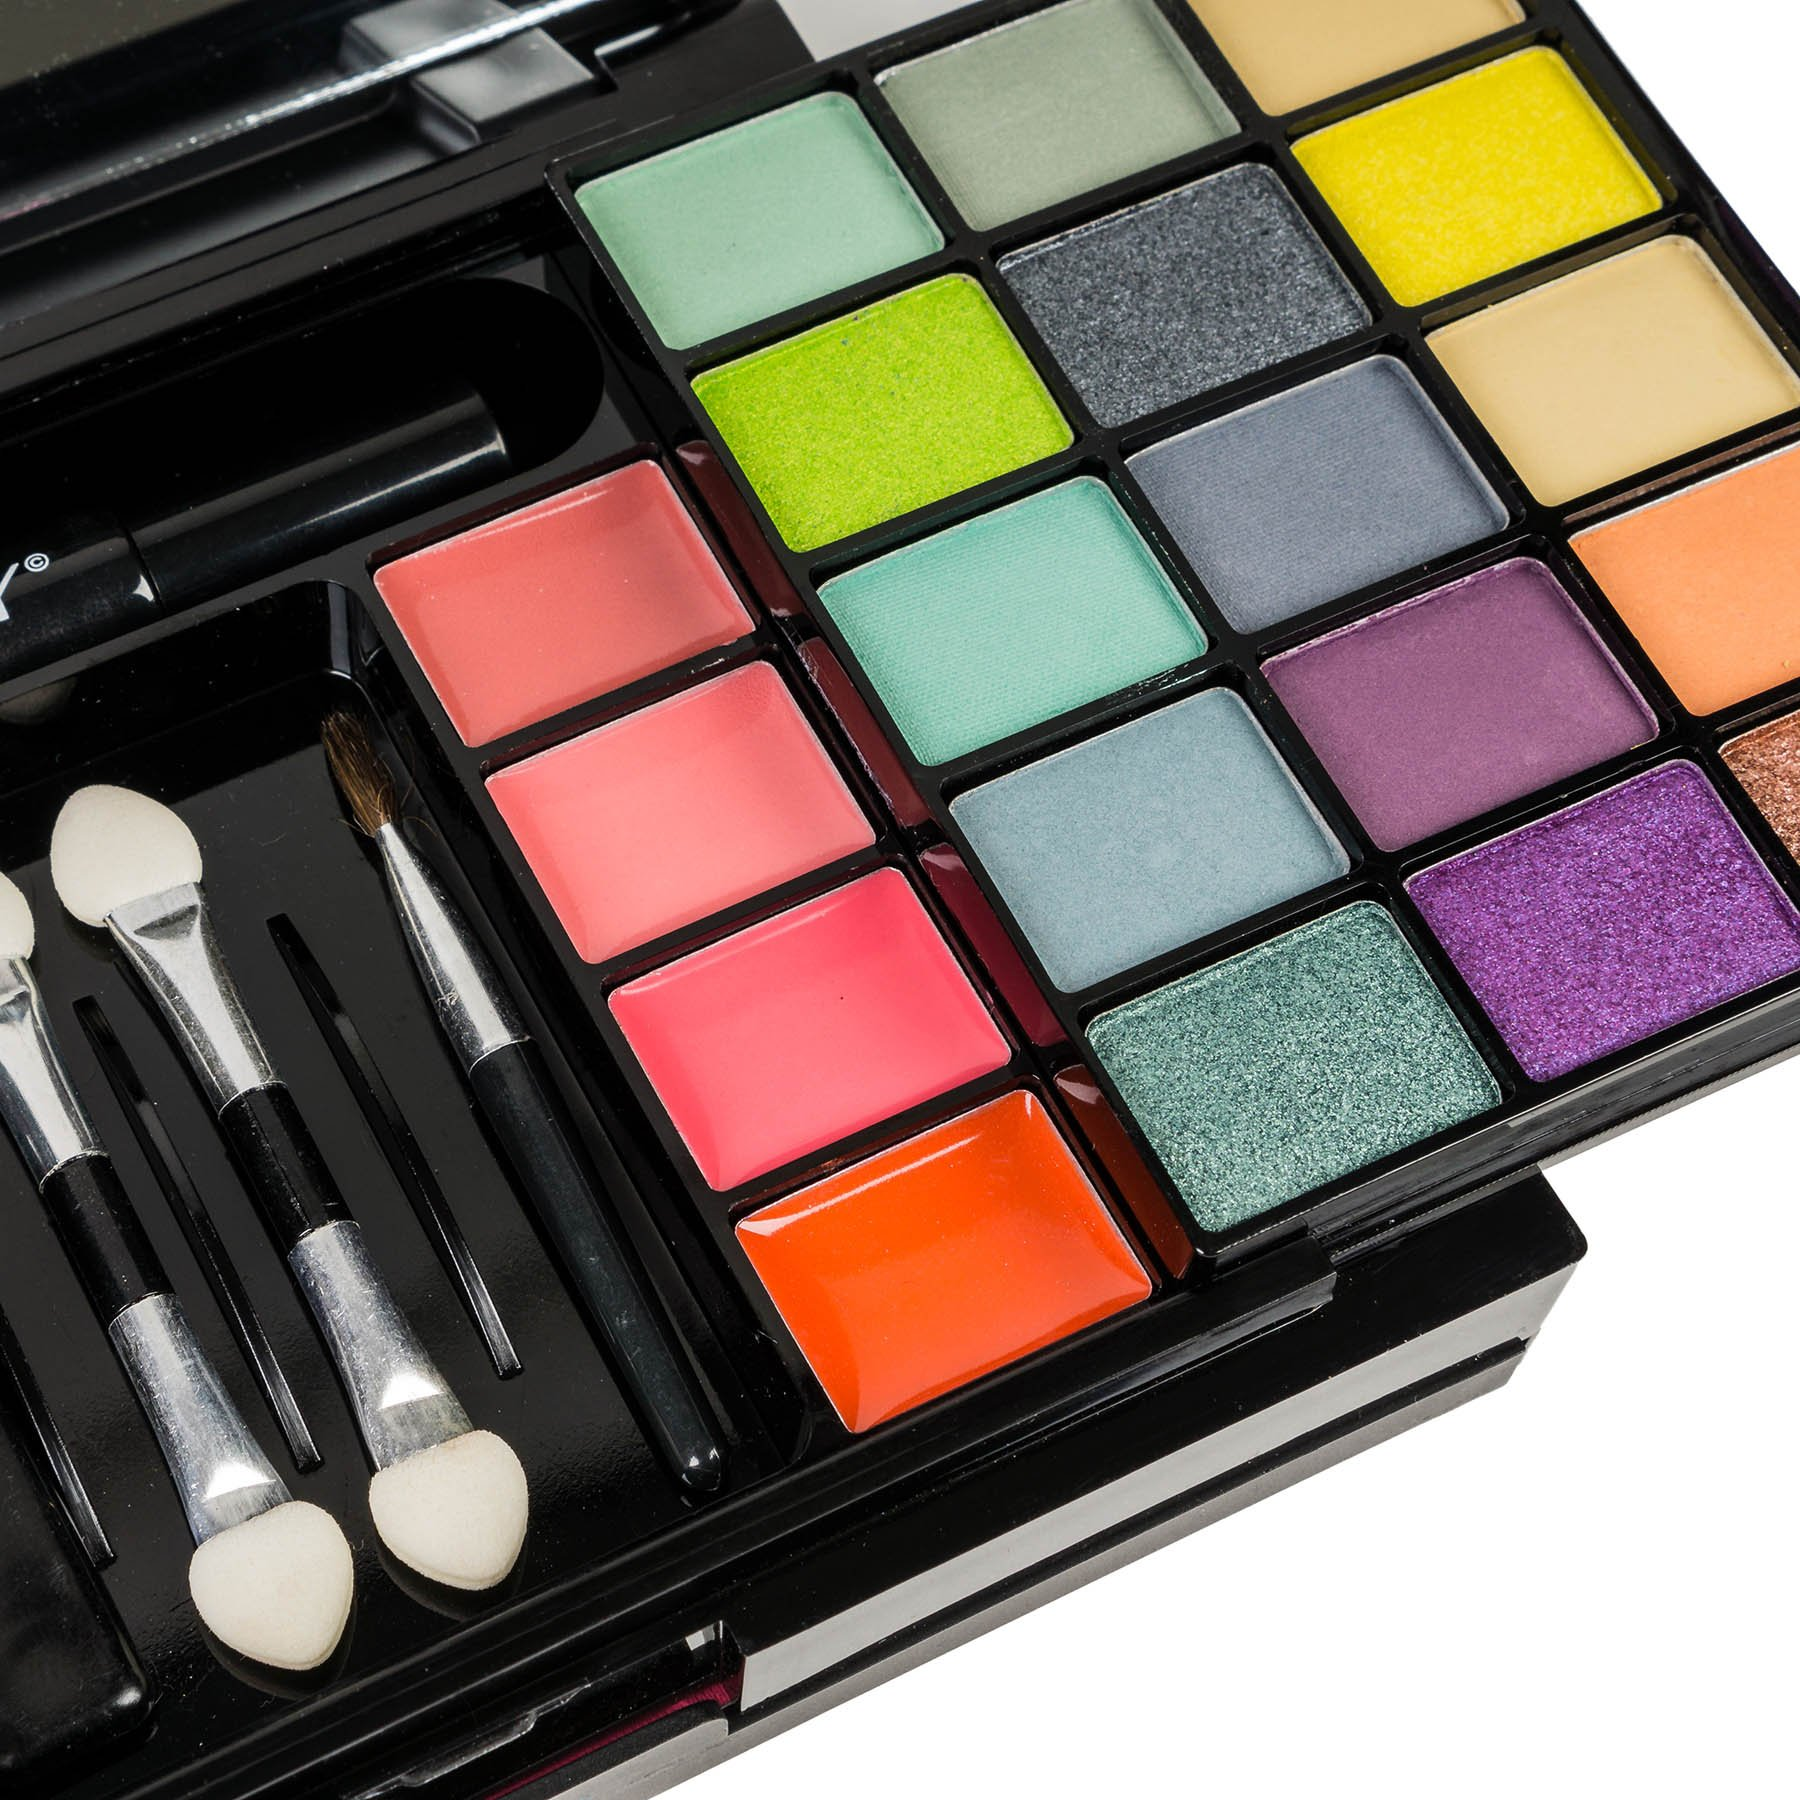 SHANY 'Fix Me Up' Makeup Kit, Multi by SHANY Cosmetics (Image #8)